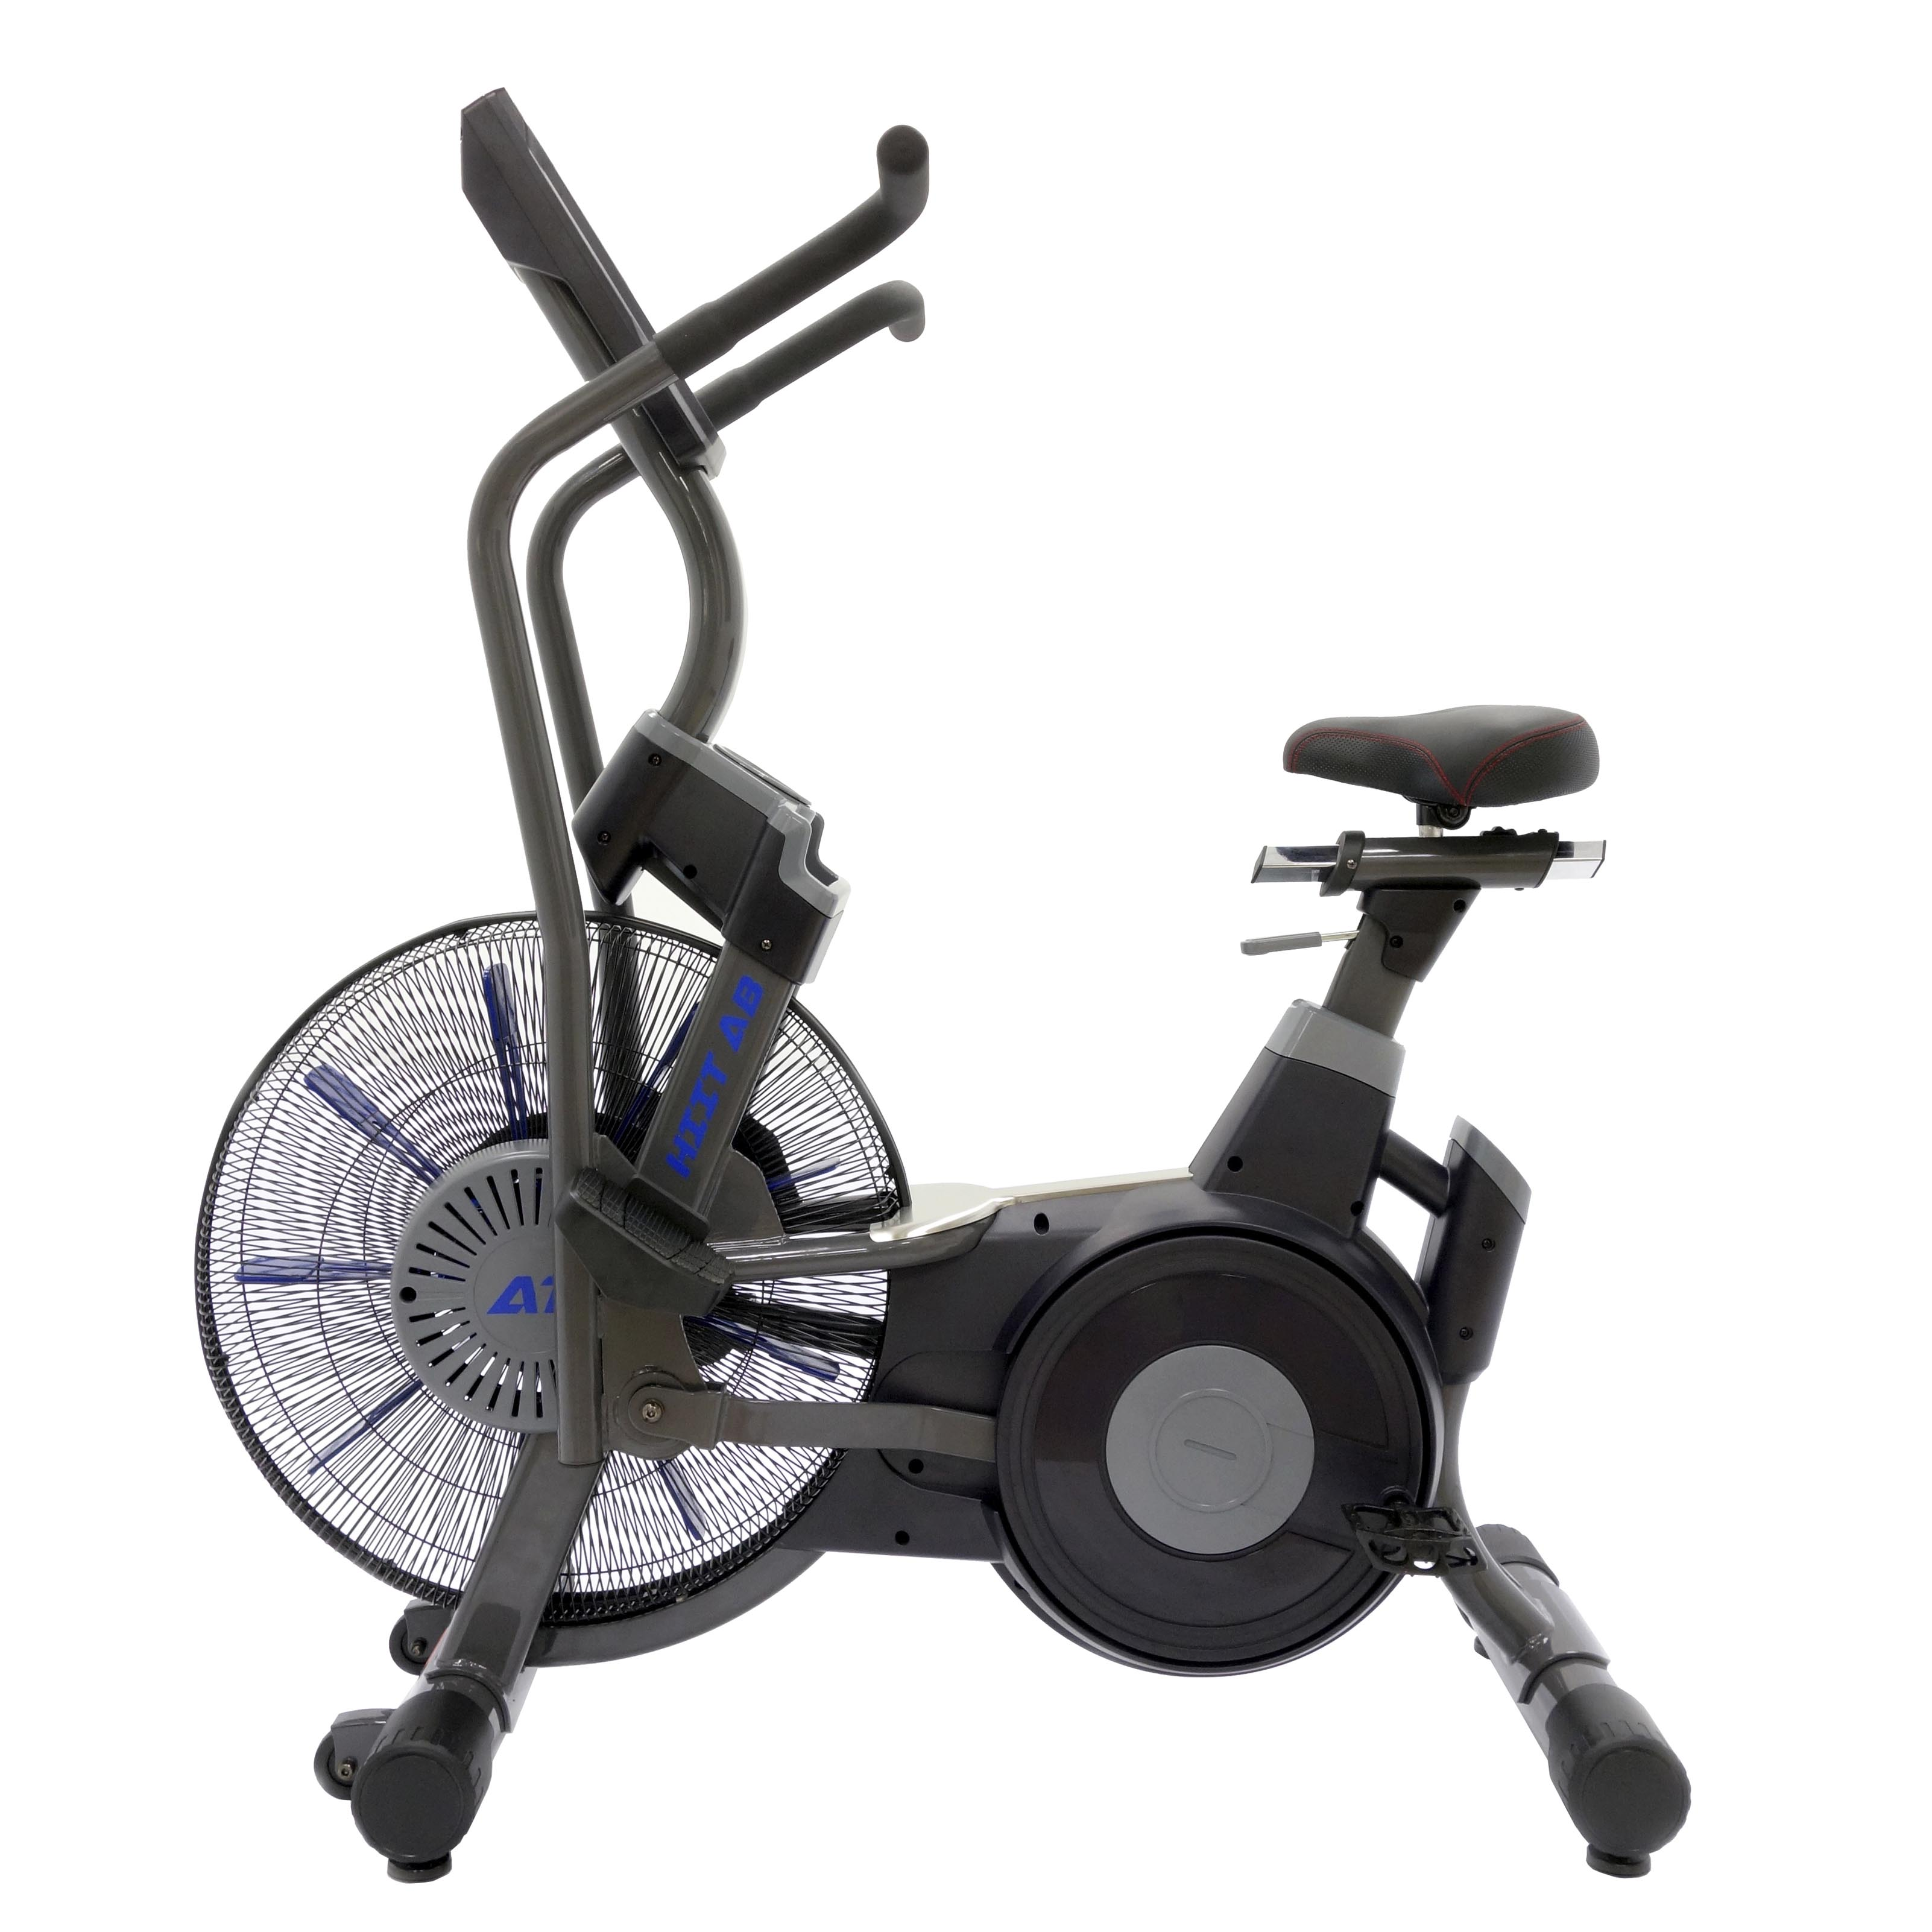 AirTEK Fitness HIIT Air Bike Main